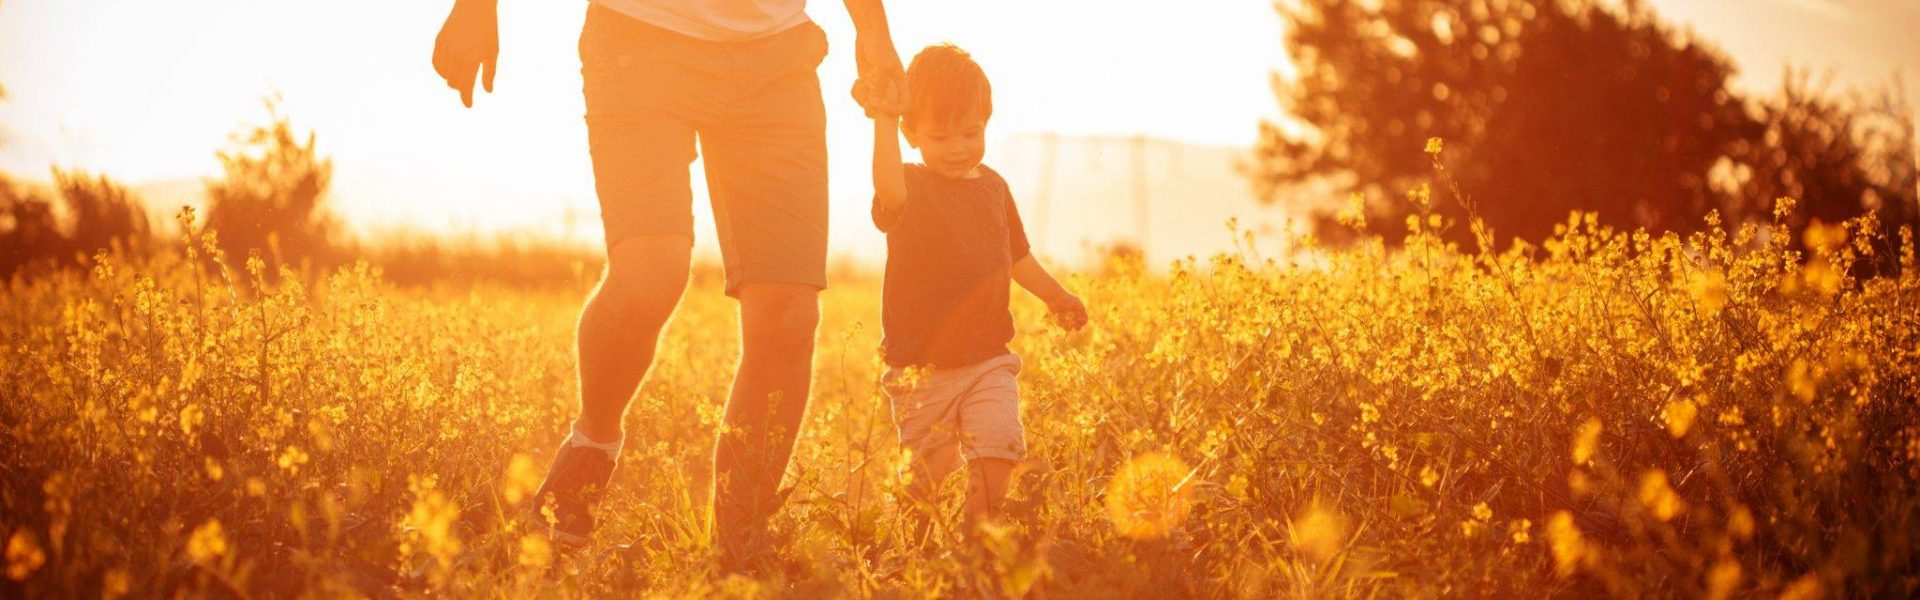 man-with-child-in-field-have-questions-about-osteopathy